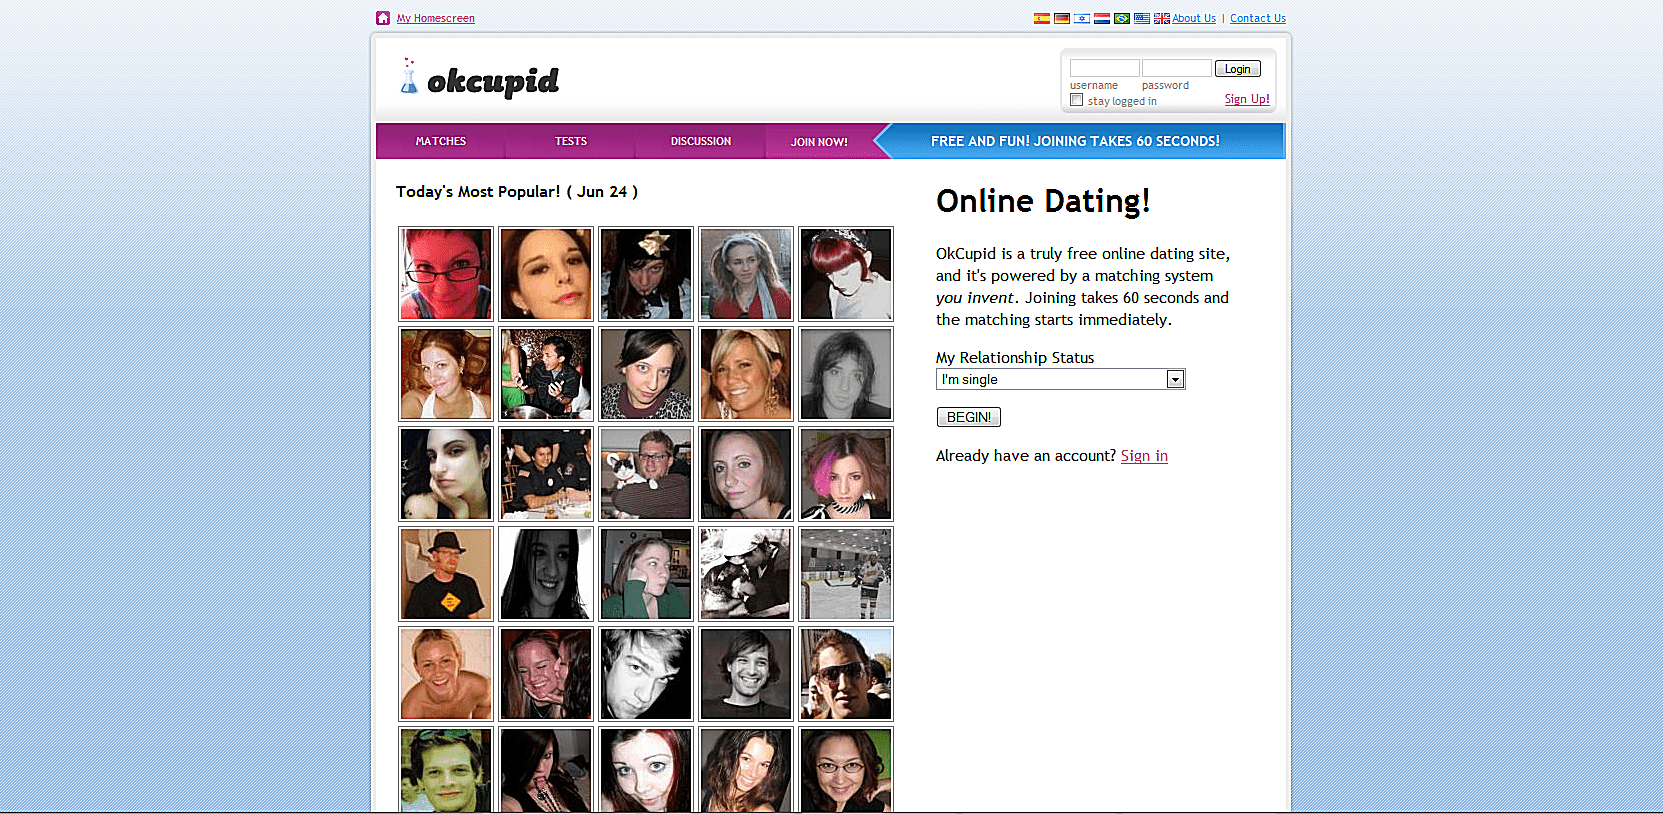 Connect your existing OkCupid account